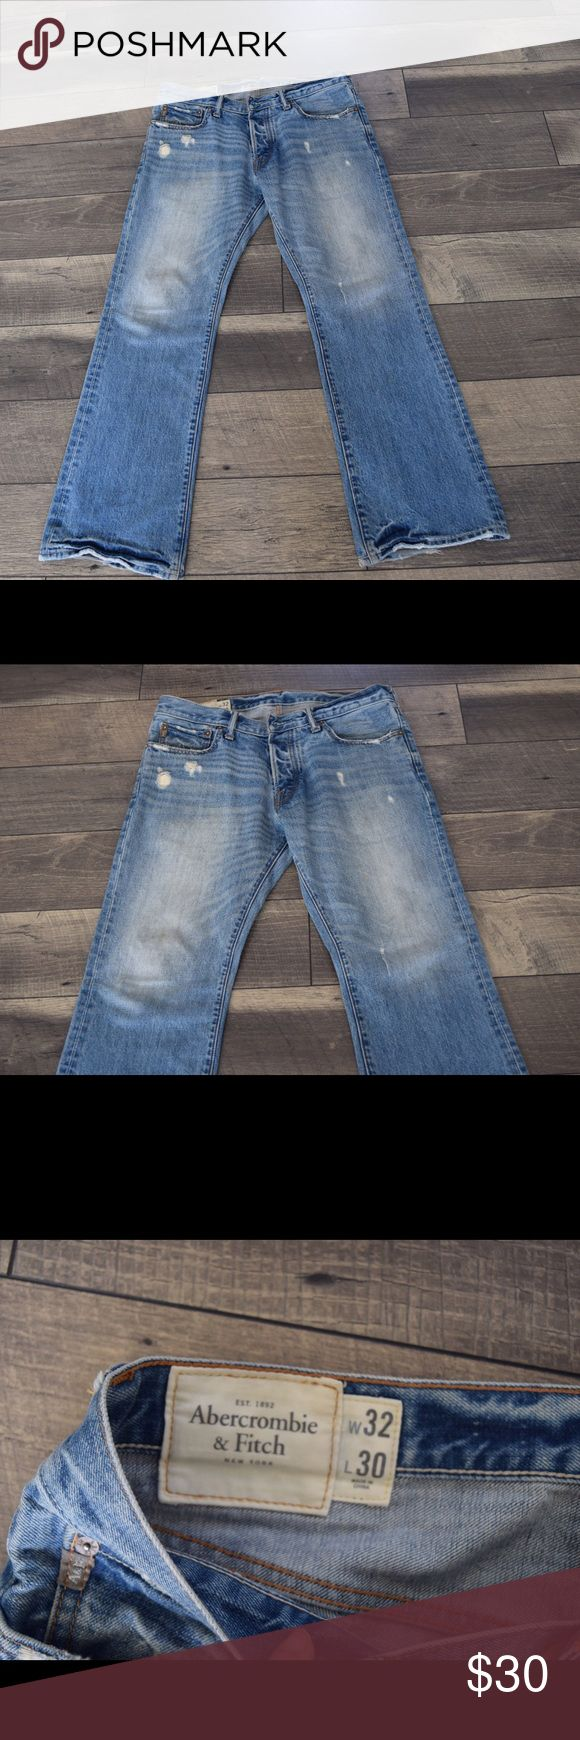 Men's Abercrombie and Fitch Jeans 32 X 30 Excellent men's jeans for sale!! Size: 32x30 Abercrombie & Fitch Jeans